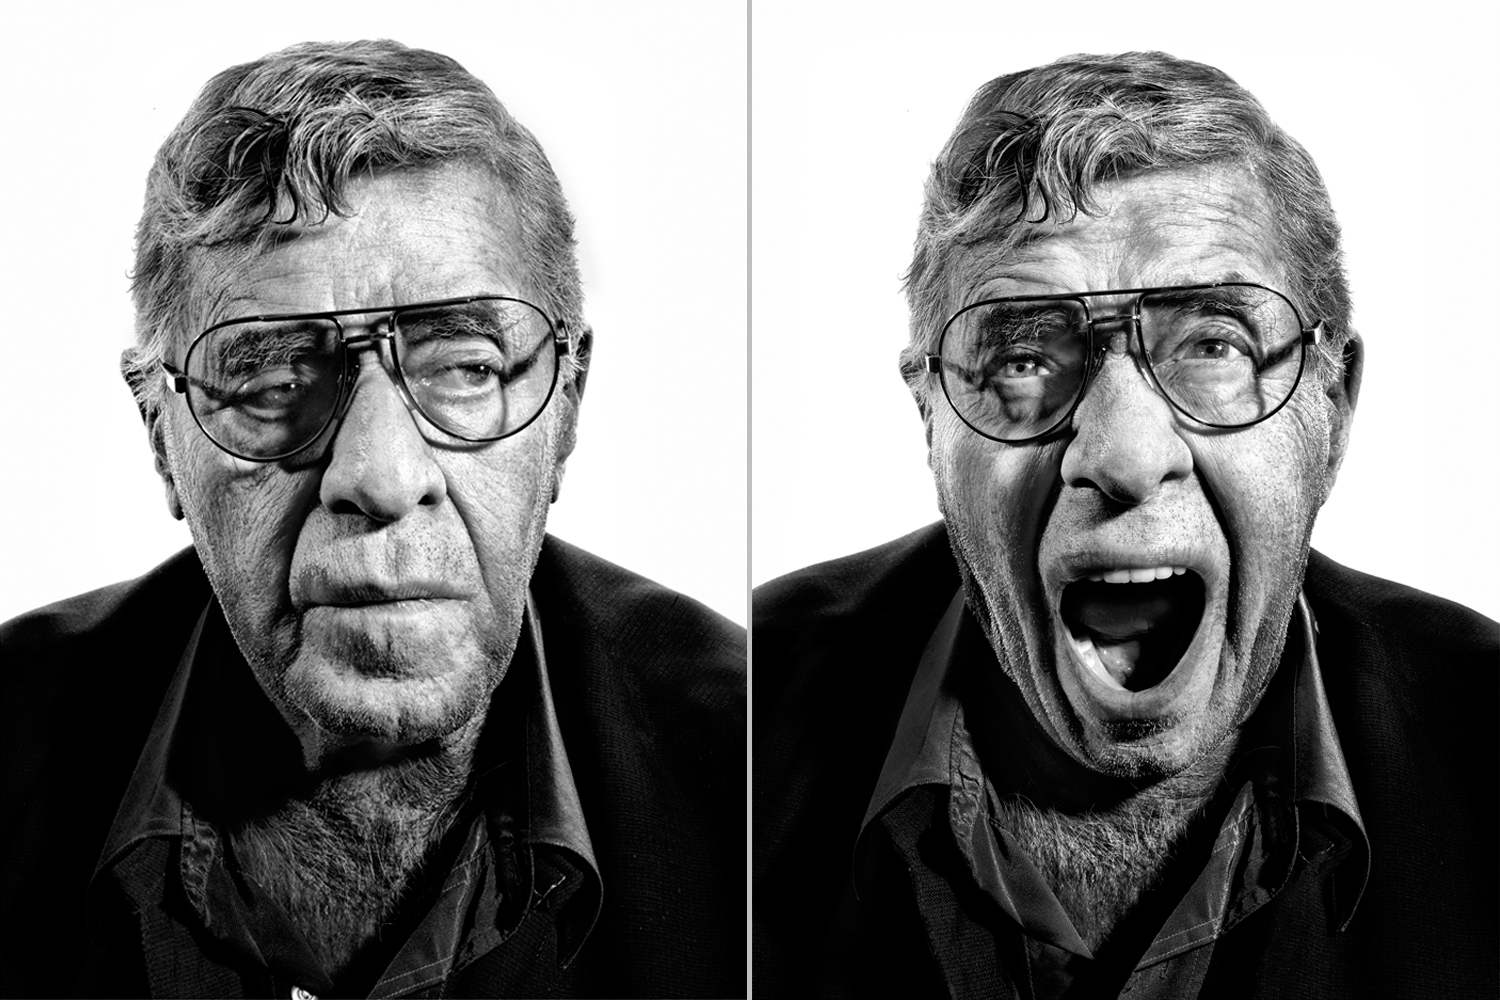 Jerry Lewis, Actor and Comedian. From  Why Did Jerry Lewis Leave the Telethon?,  August 27, 2012 issue.